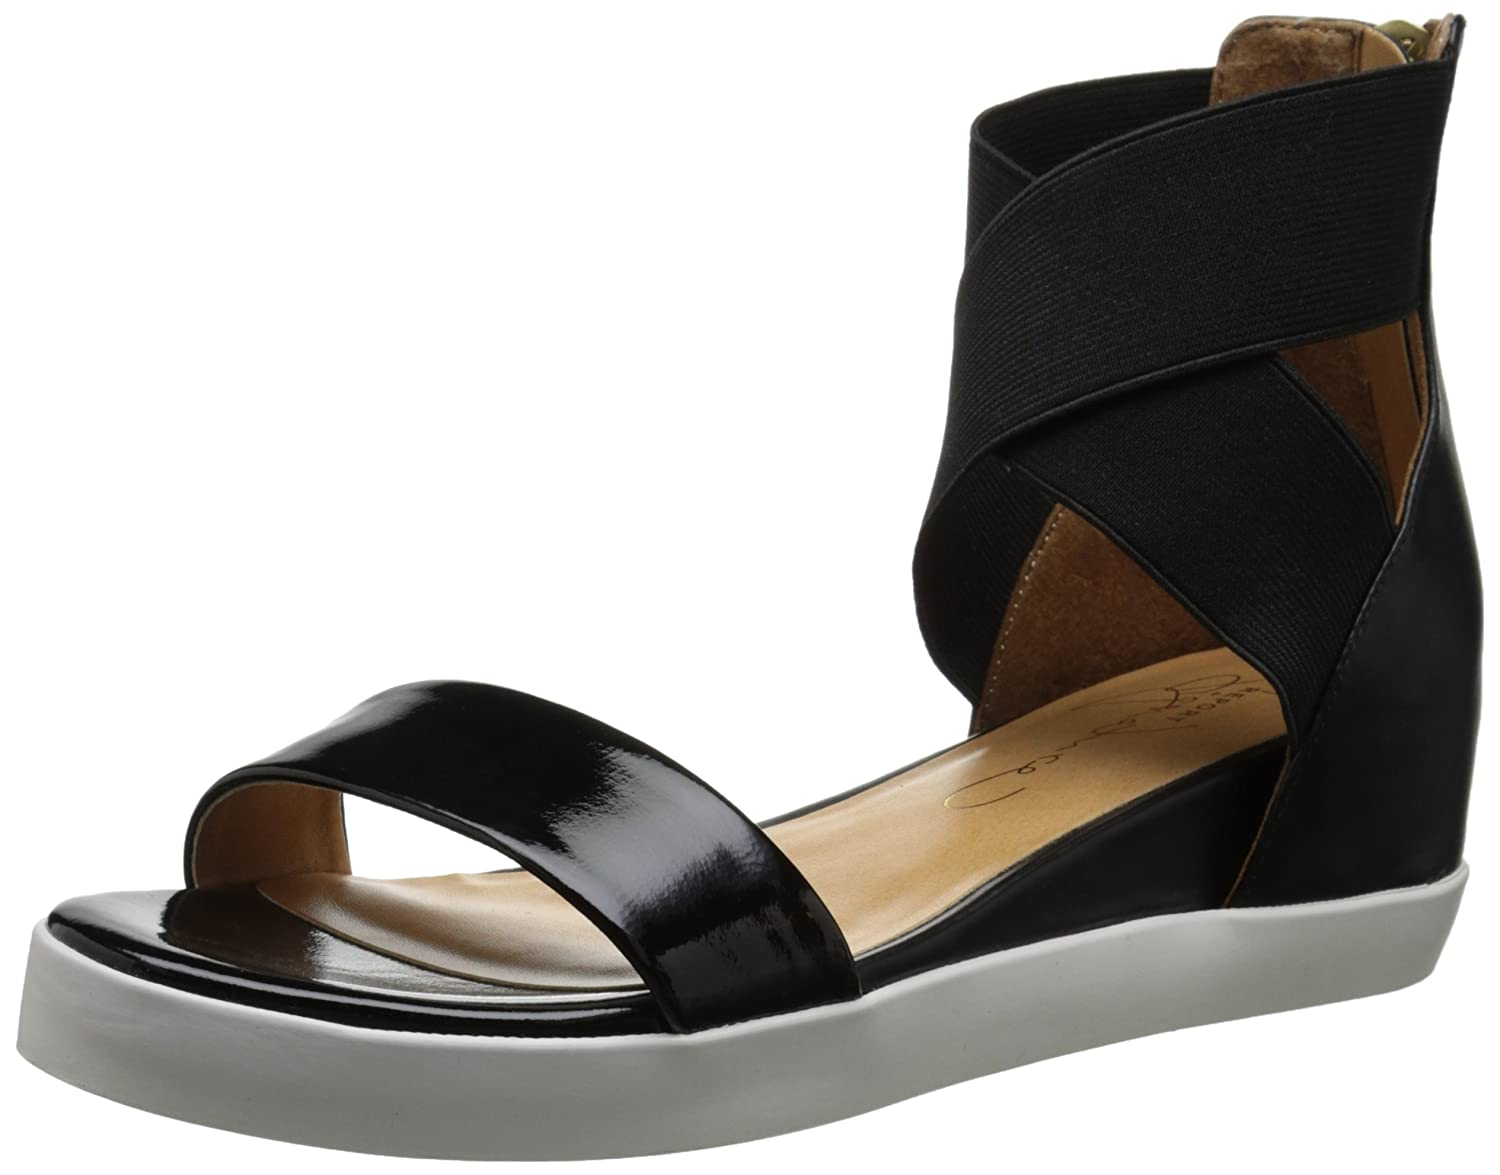 Report Signature Women's Catherine Platform Sandal B000VU1LGG 6.5 B(M) US|Black